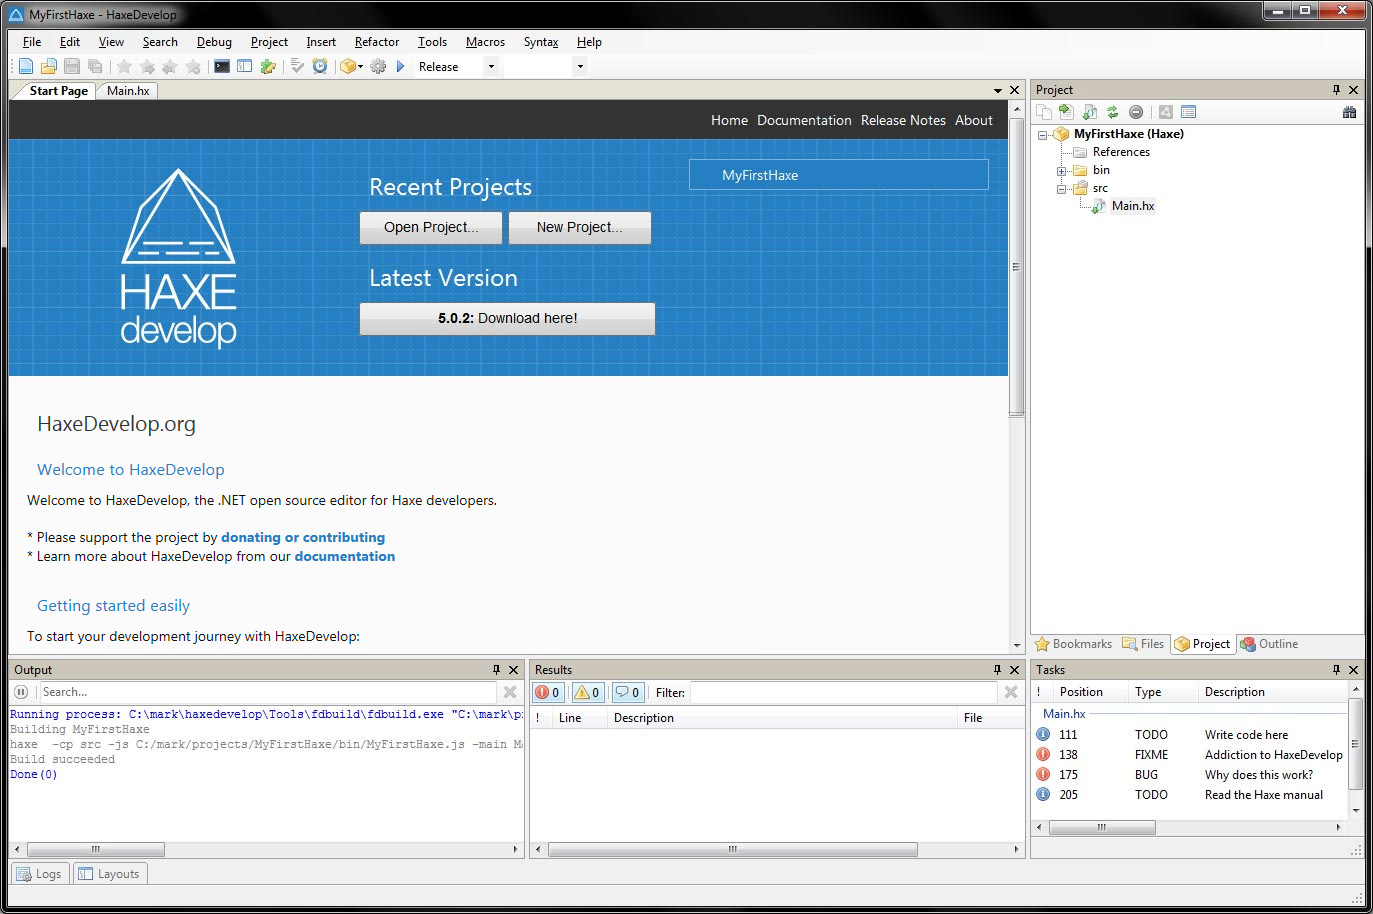 HaxeDevelop screenshot